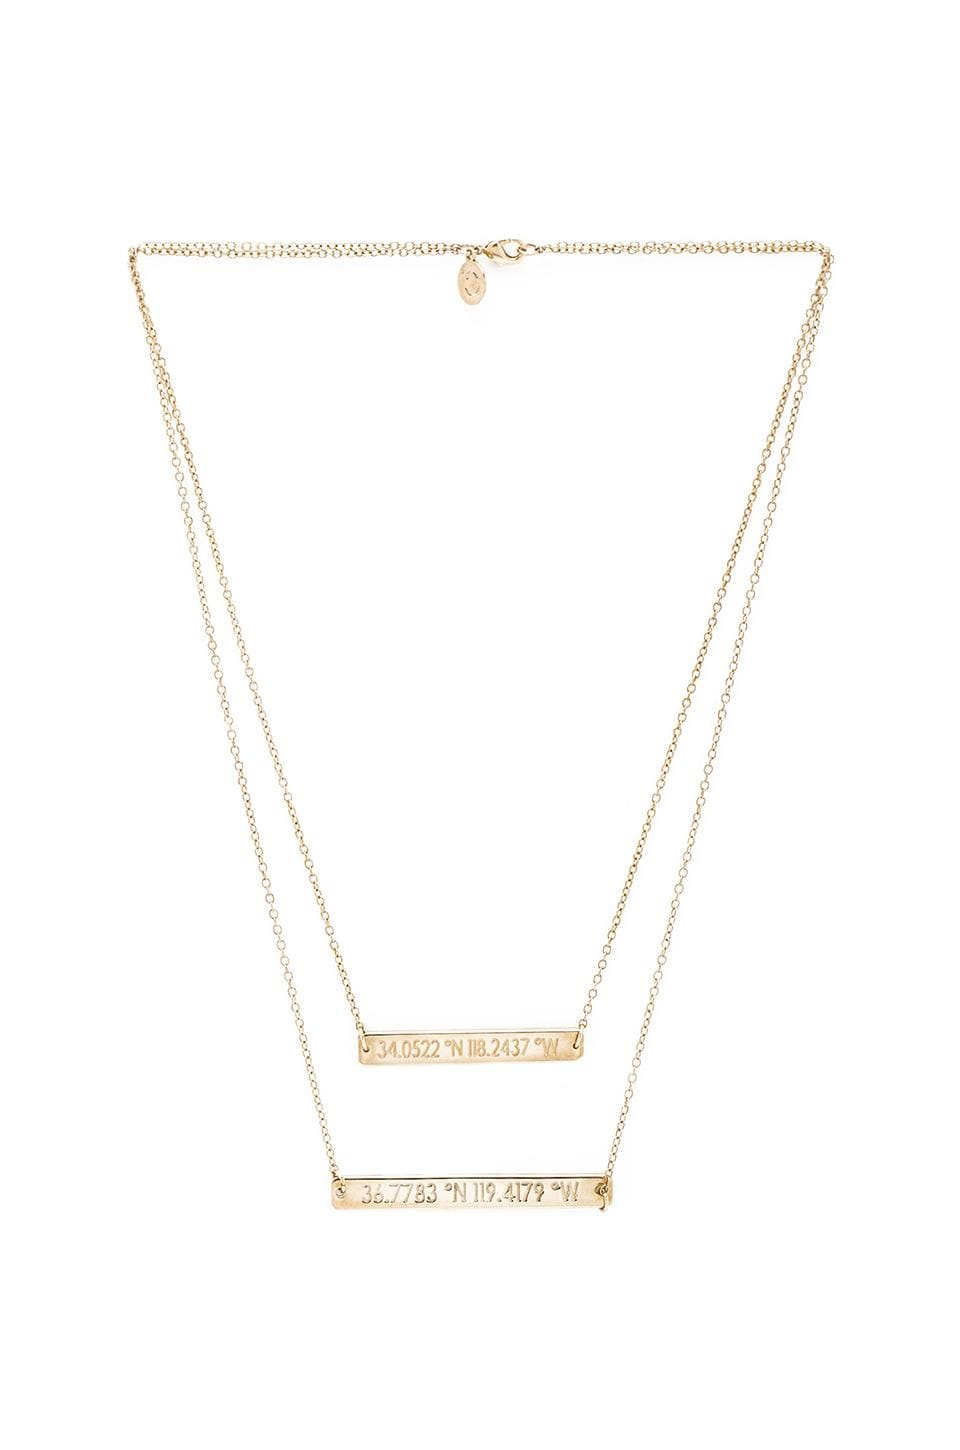 coordinates California Equator Necklace in Gold